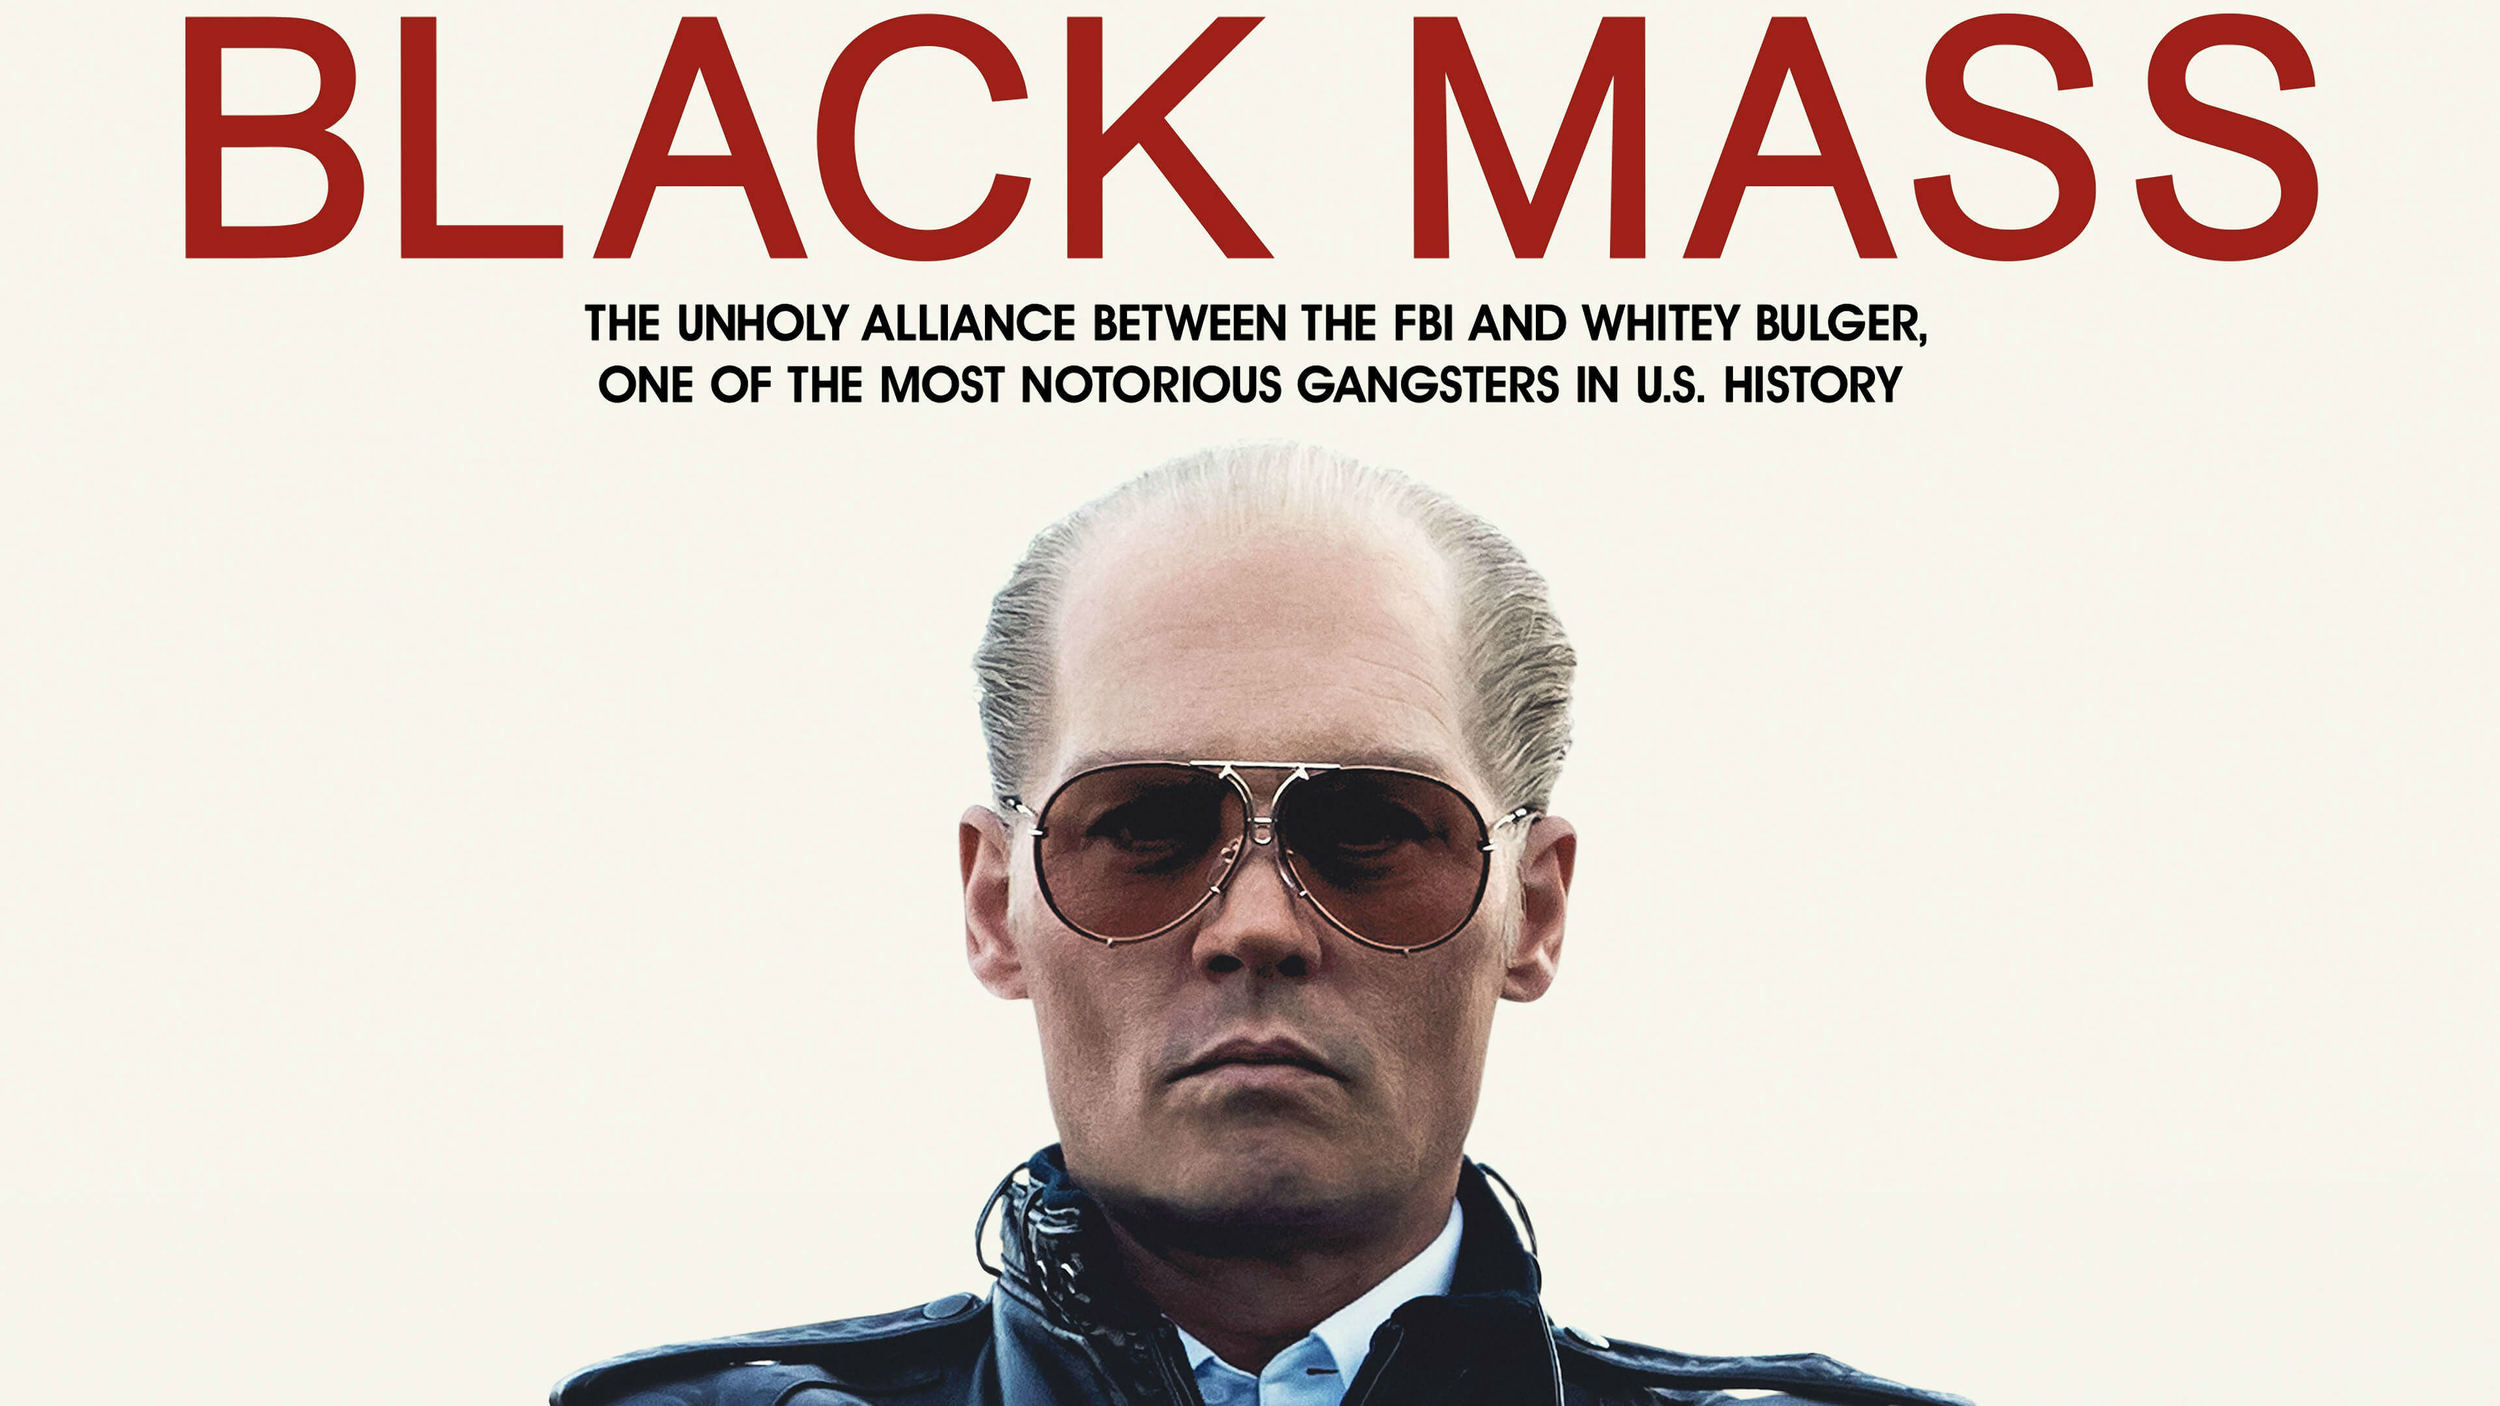 Black Mass Cover